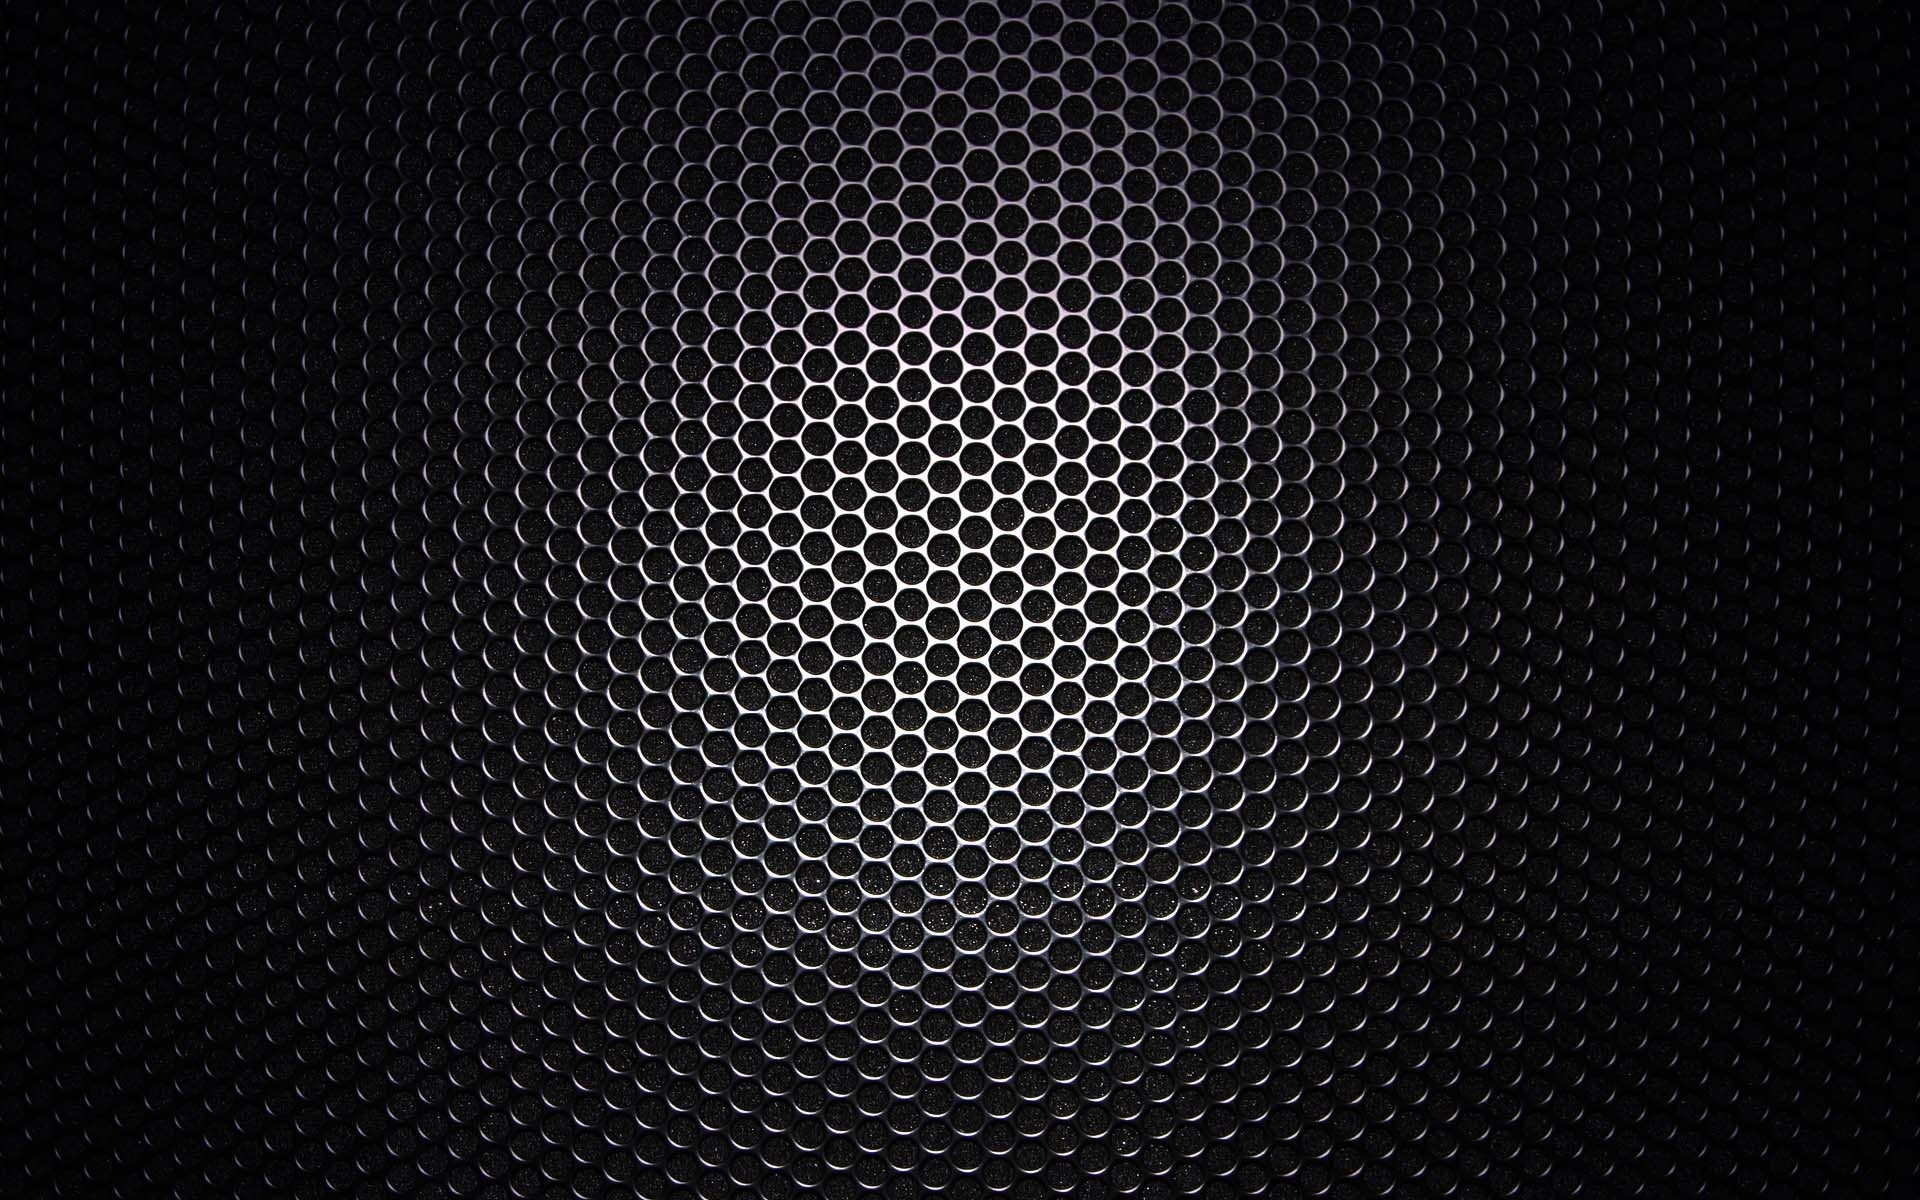 texture, metal grid, download photo, metal texture, background